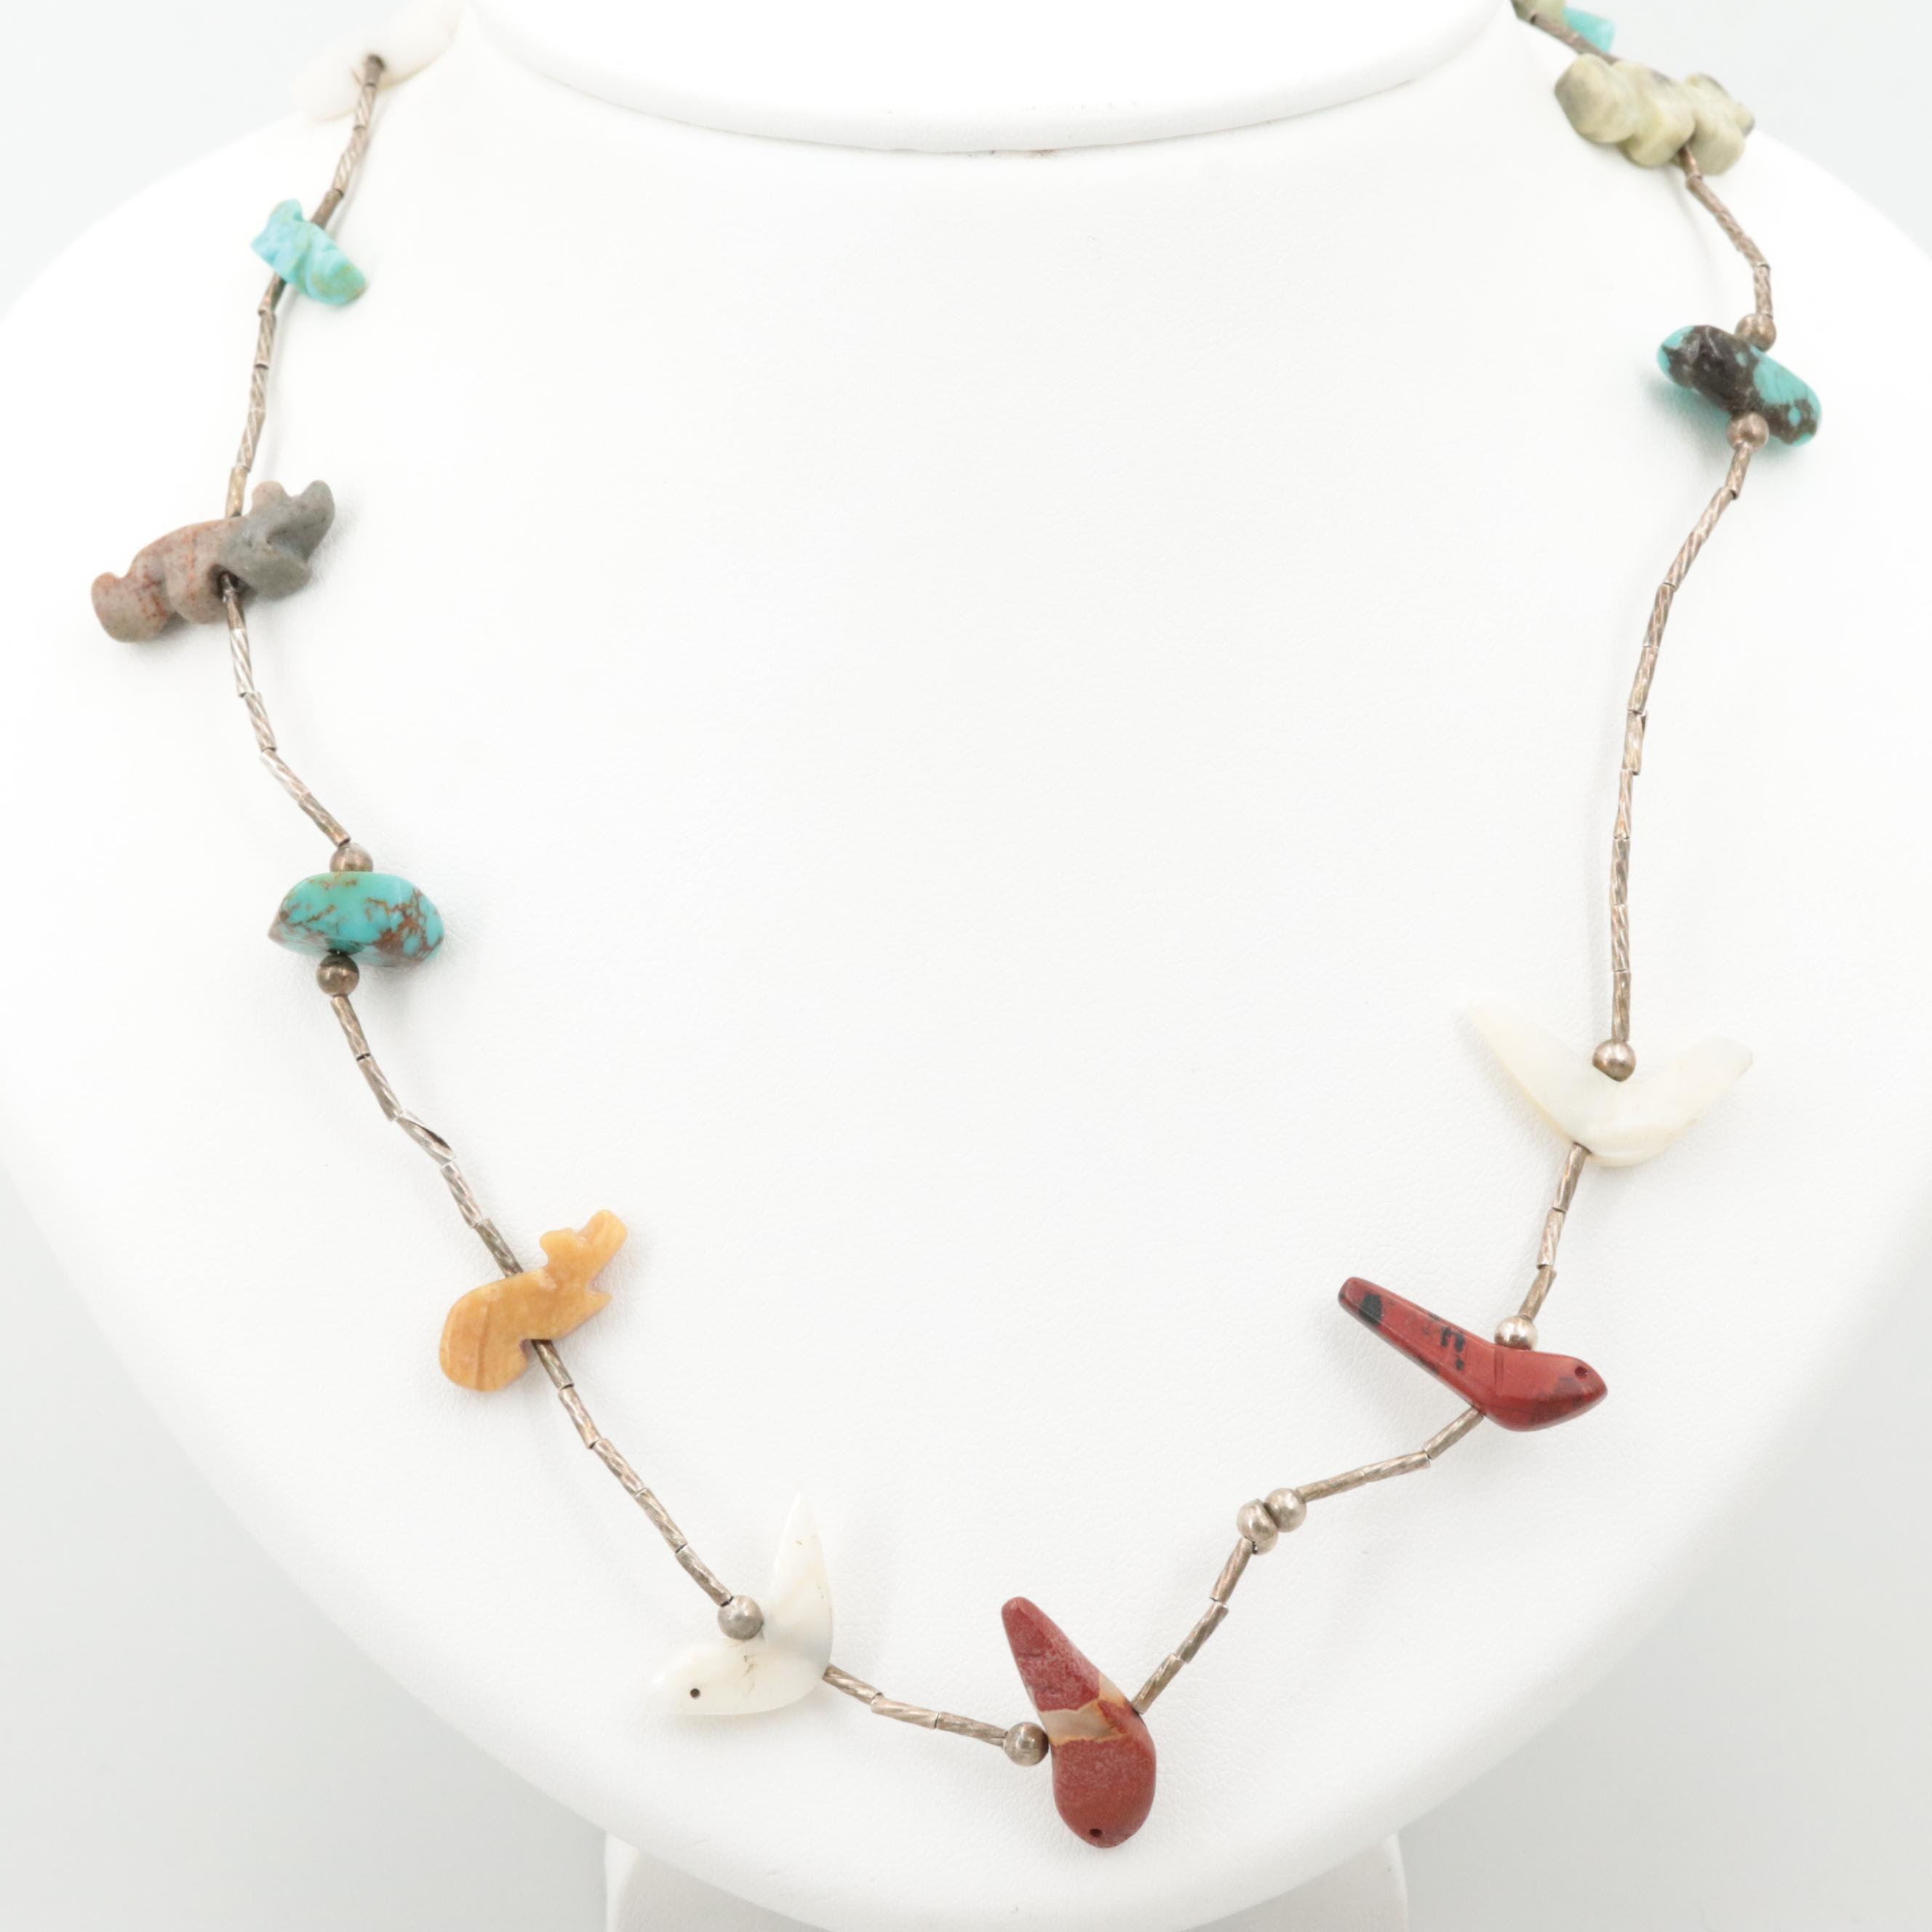 Southwestern Silver Tone Turquoise, Jasper and Mother of Pearl Fetish Necklace